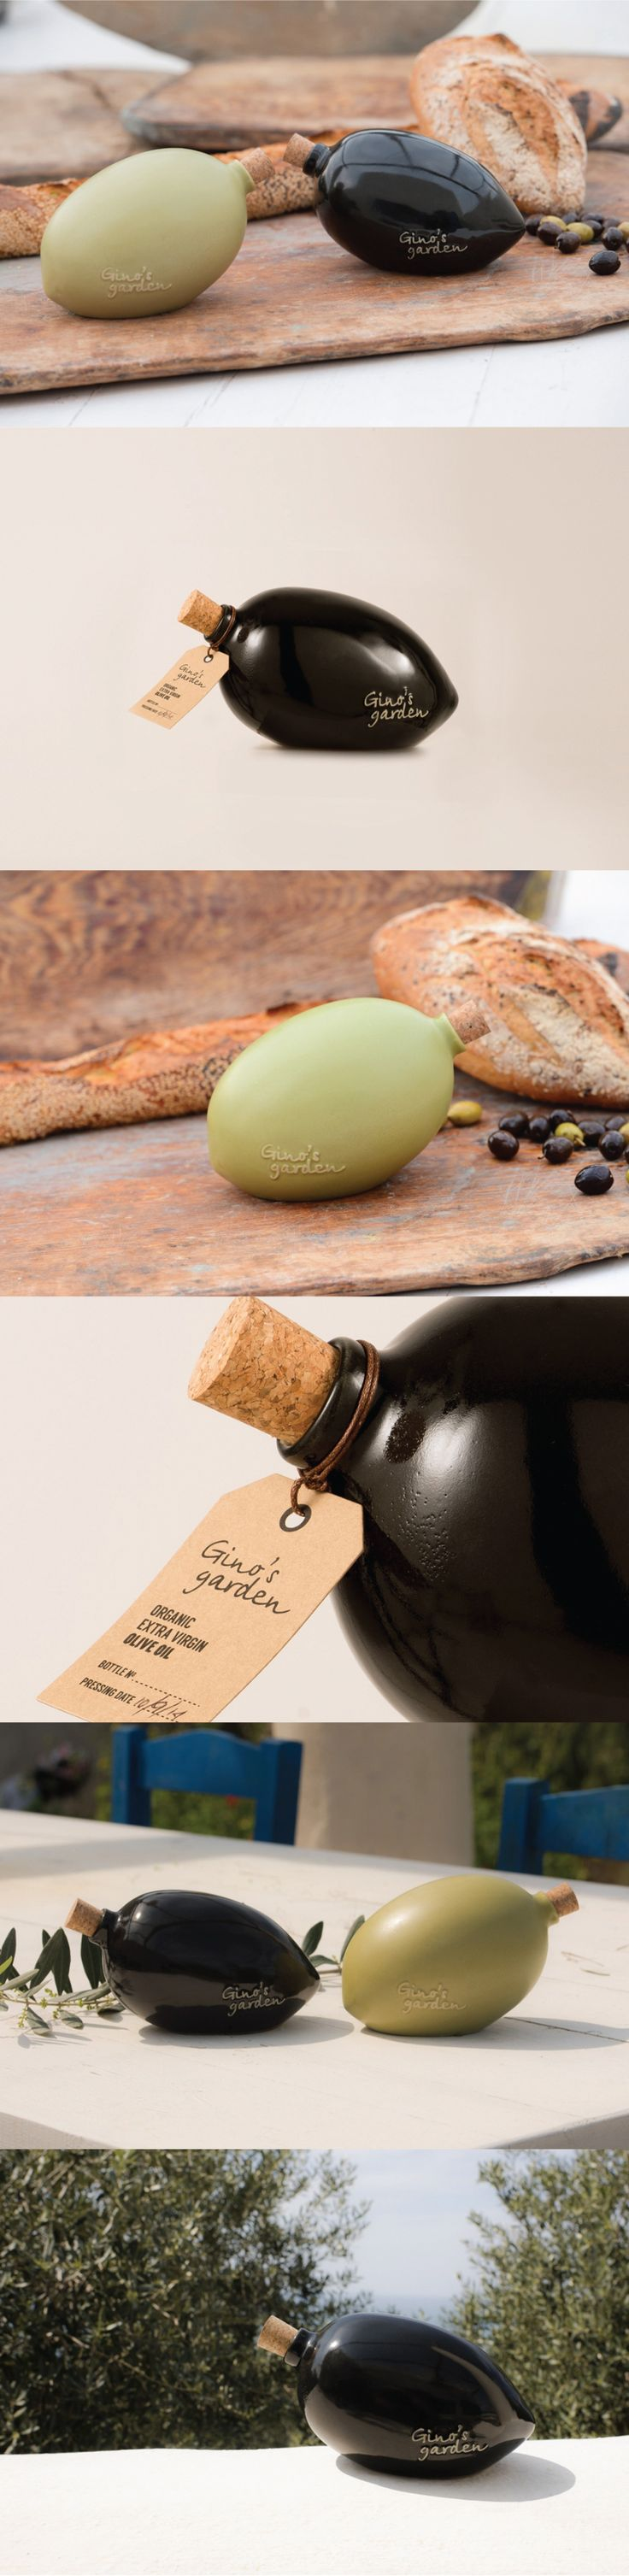 Gino's Garden Olive. The bottle is shaped by calculations which only NASA scientists could understand. #packaging #design